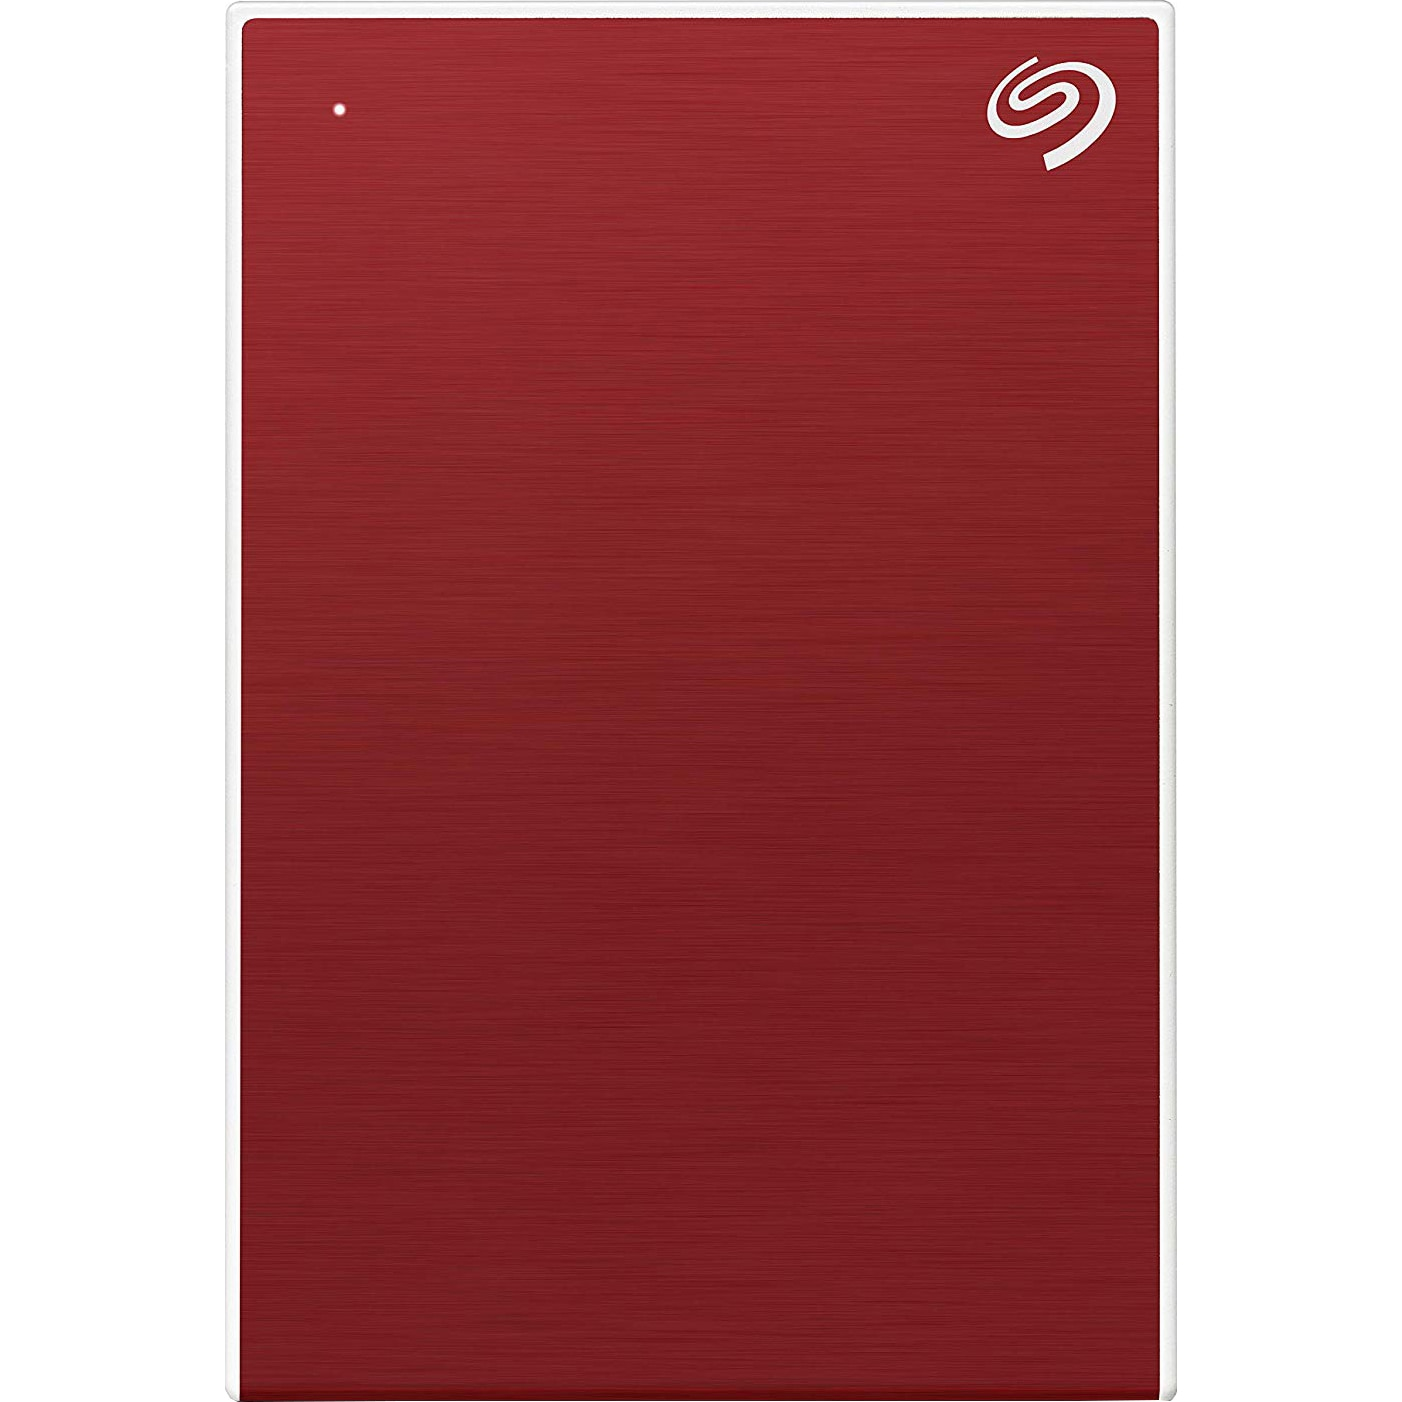 """Fotografie HDD Extern Seagate Backup Plus High Capacity 5TB, 2.5"""", USB 3.0, Red"""